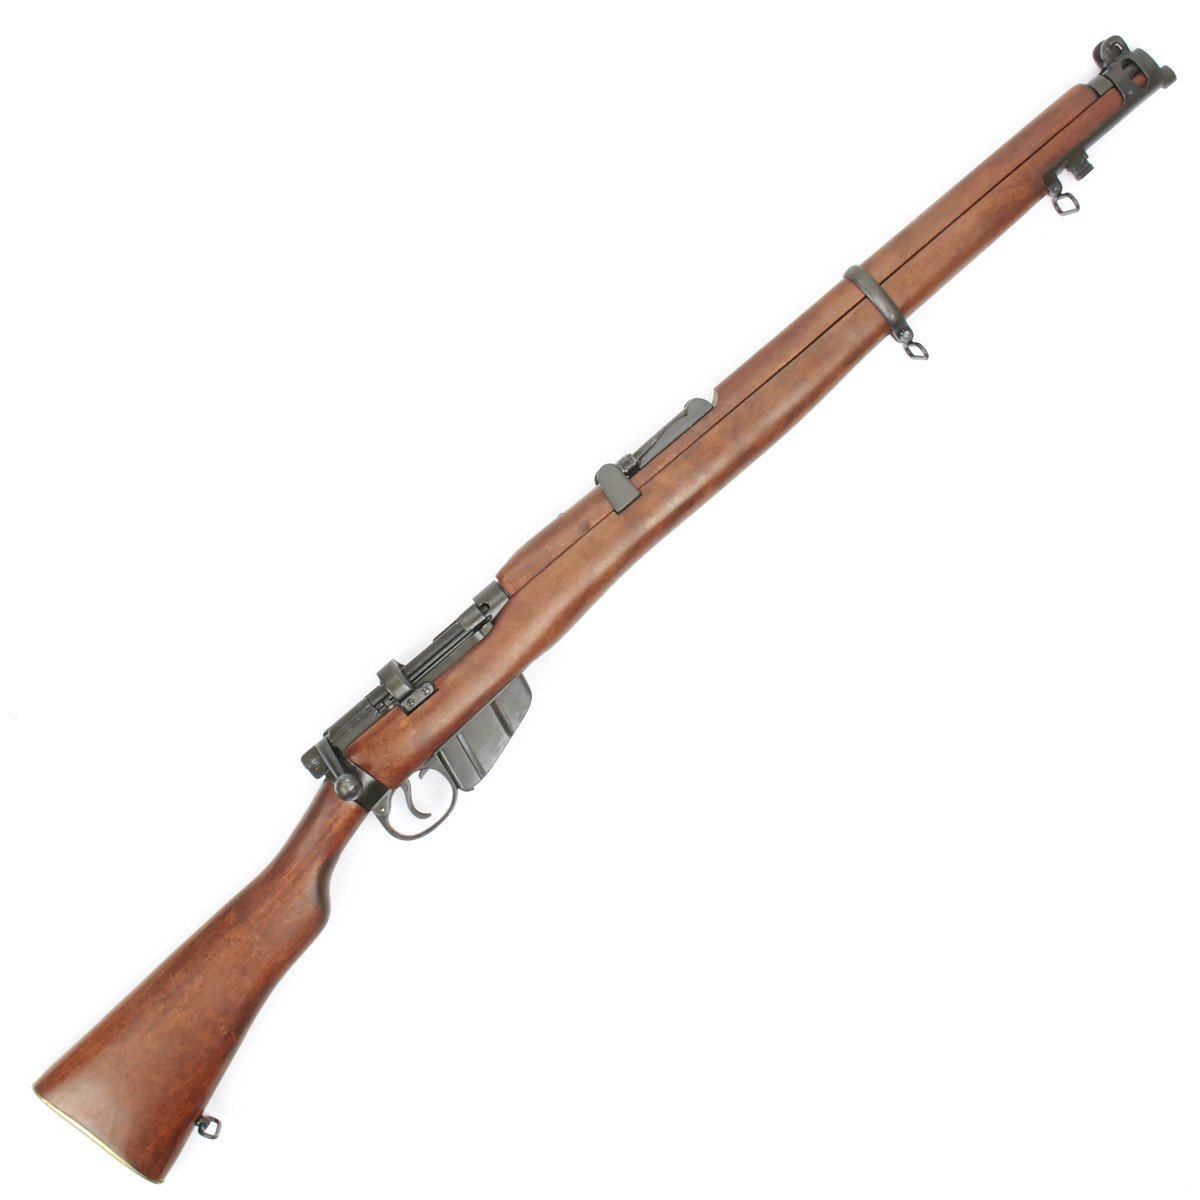 British WWII Lee-Enfield  303 SMLE New Made Display Rifle